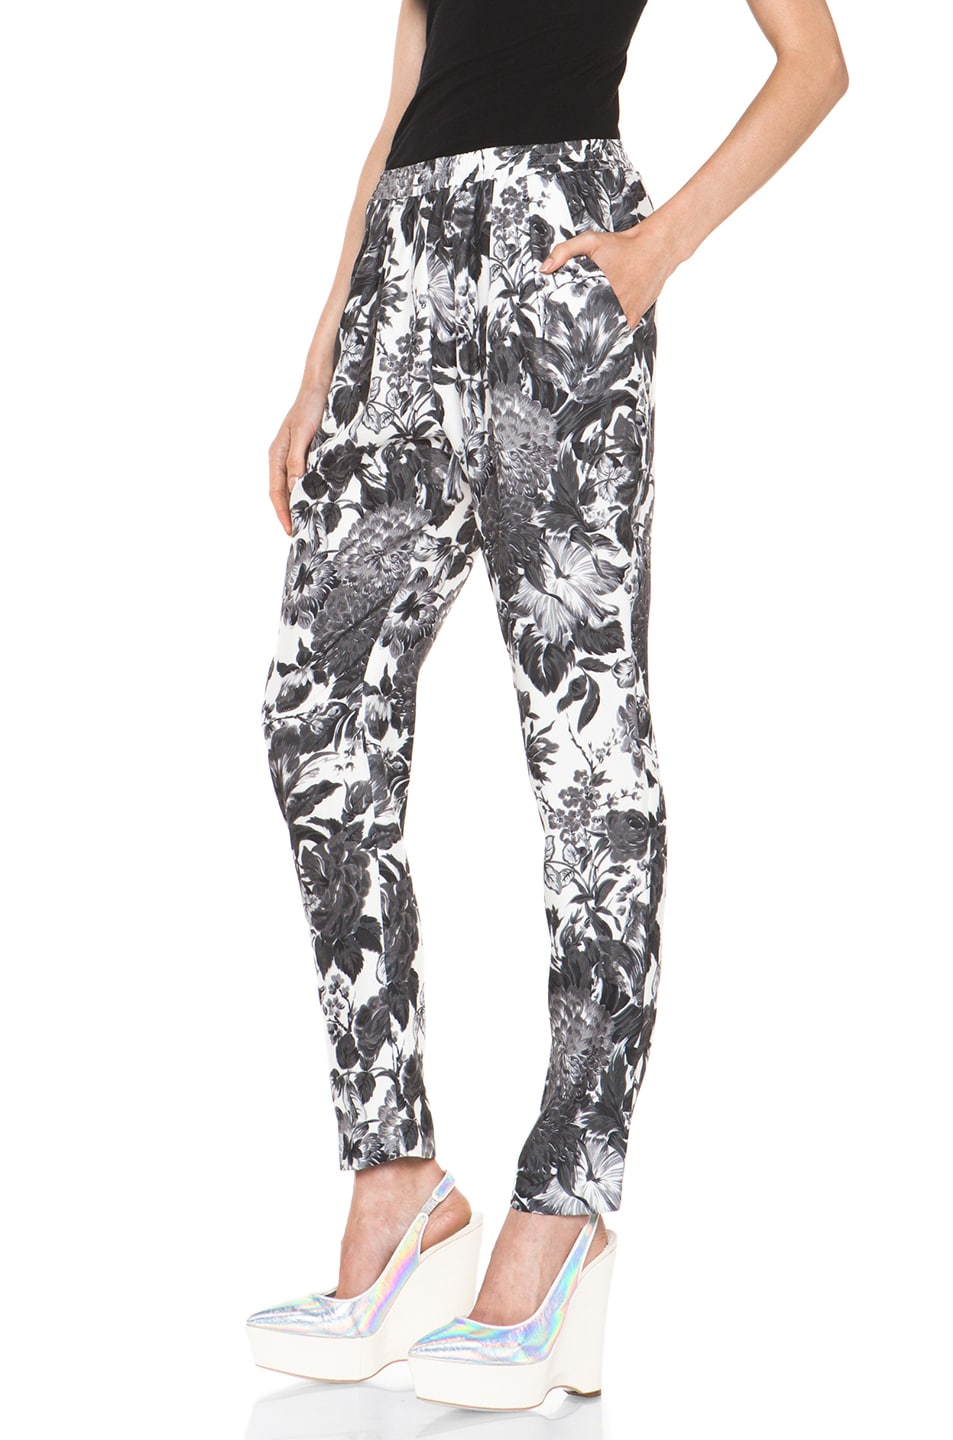 Image 2 of Stella McCartney Toile De Jouy Print Pant in Black Multi